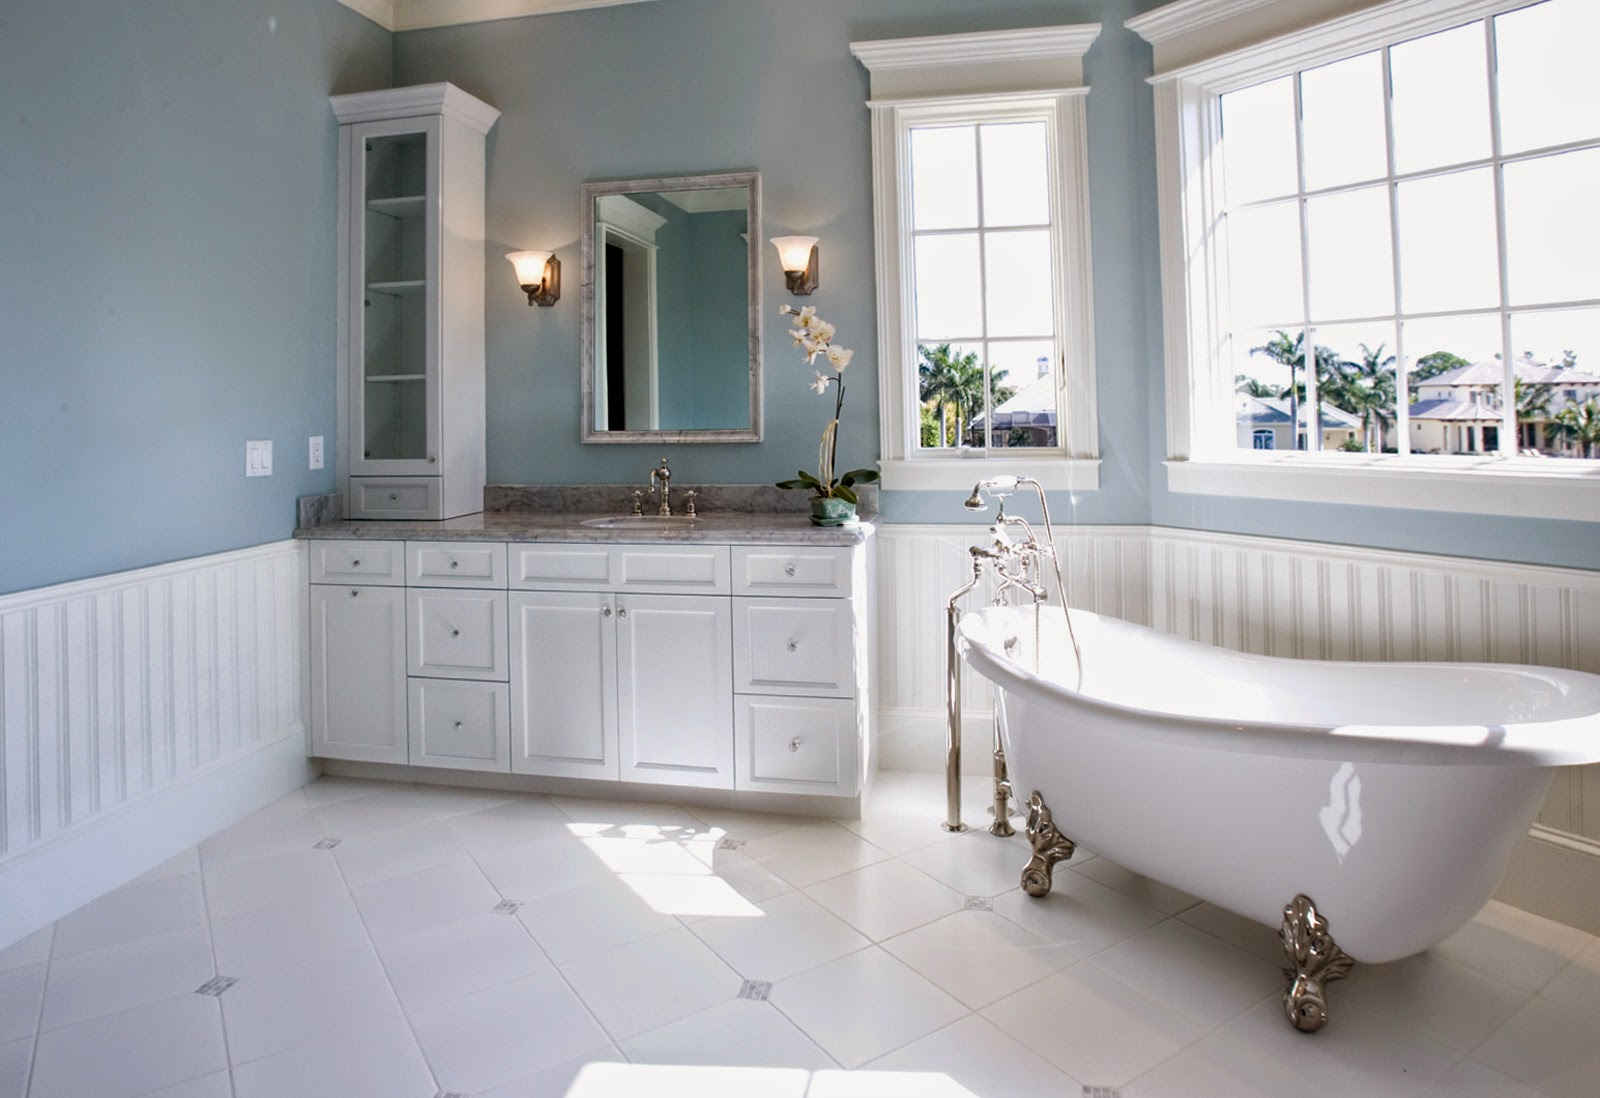 Top 10 beautiful bathroom design 2014 home interior blog for Bathroom design galleries